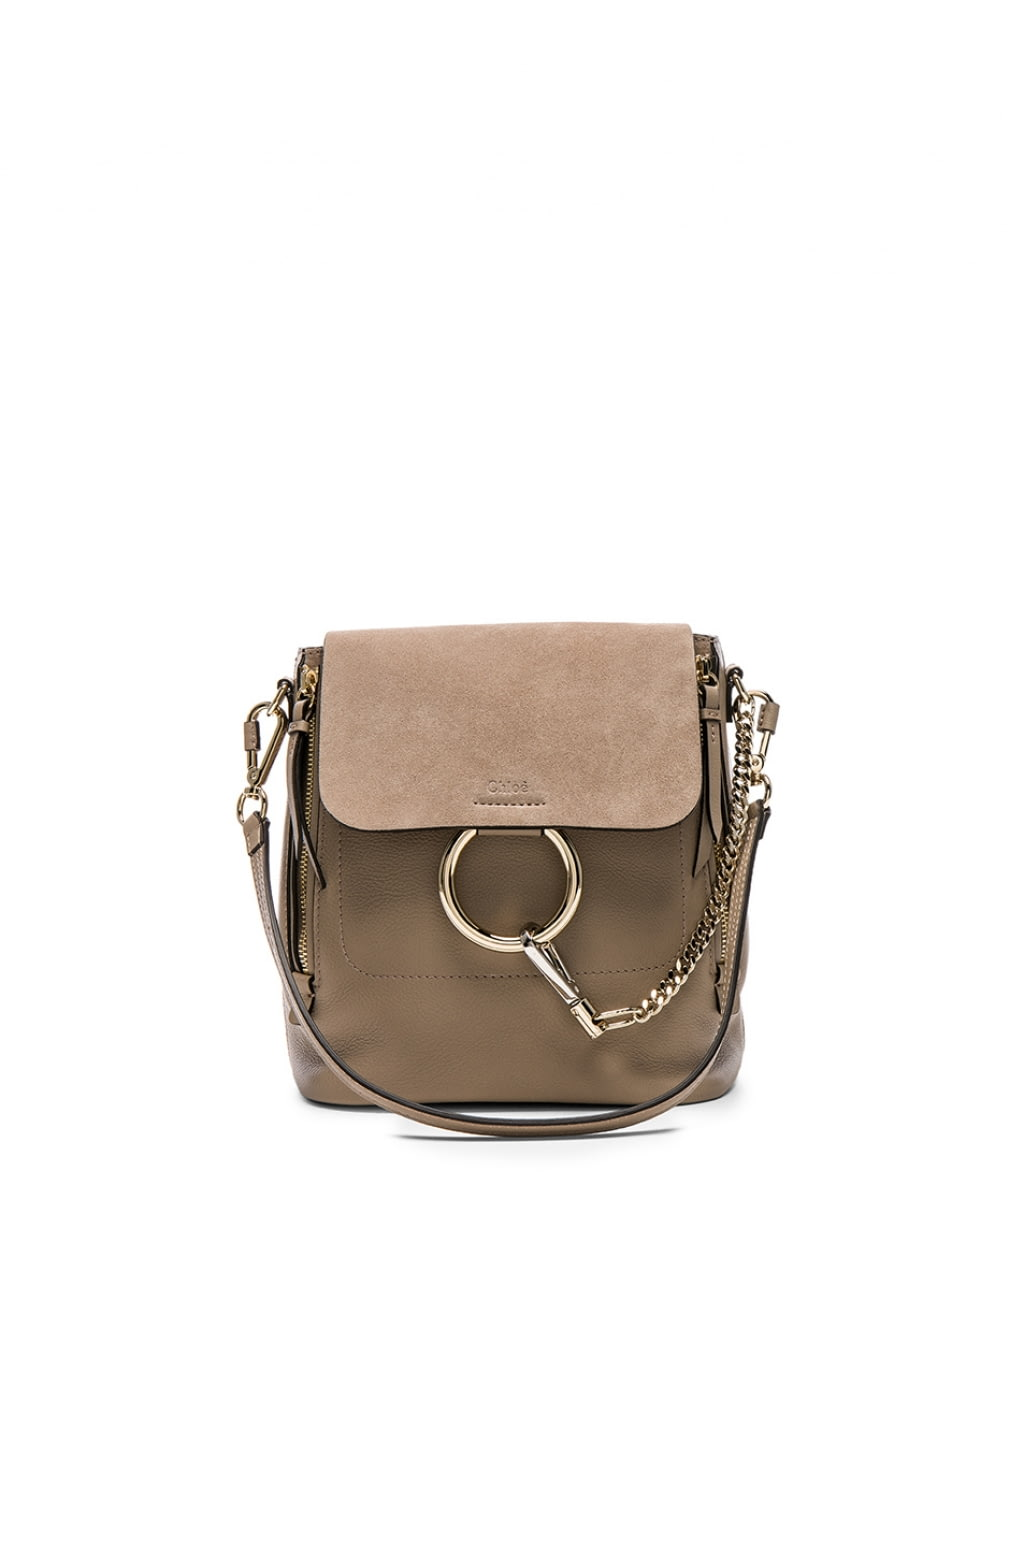 0cfa65893864 Buy original chloe small faye suede calfskin backpack at indonesia jpg  1024x1547 Chloe backpack